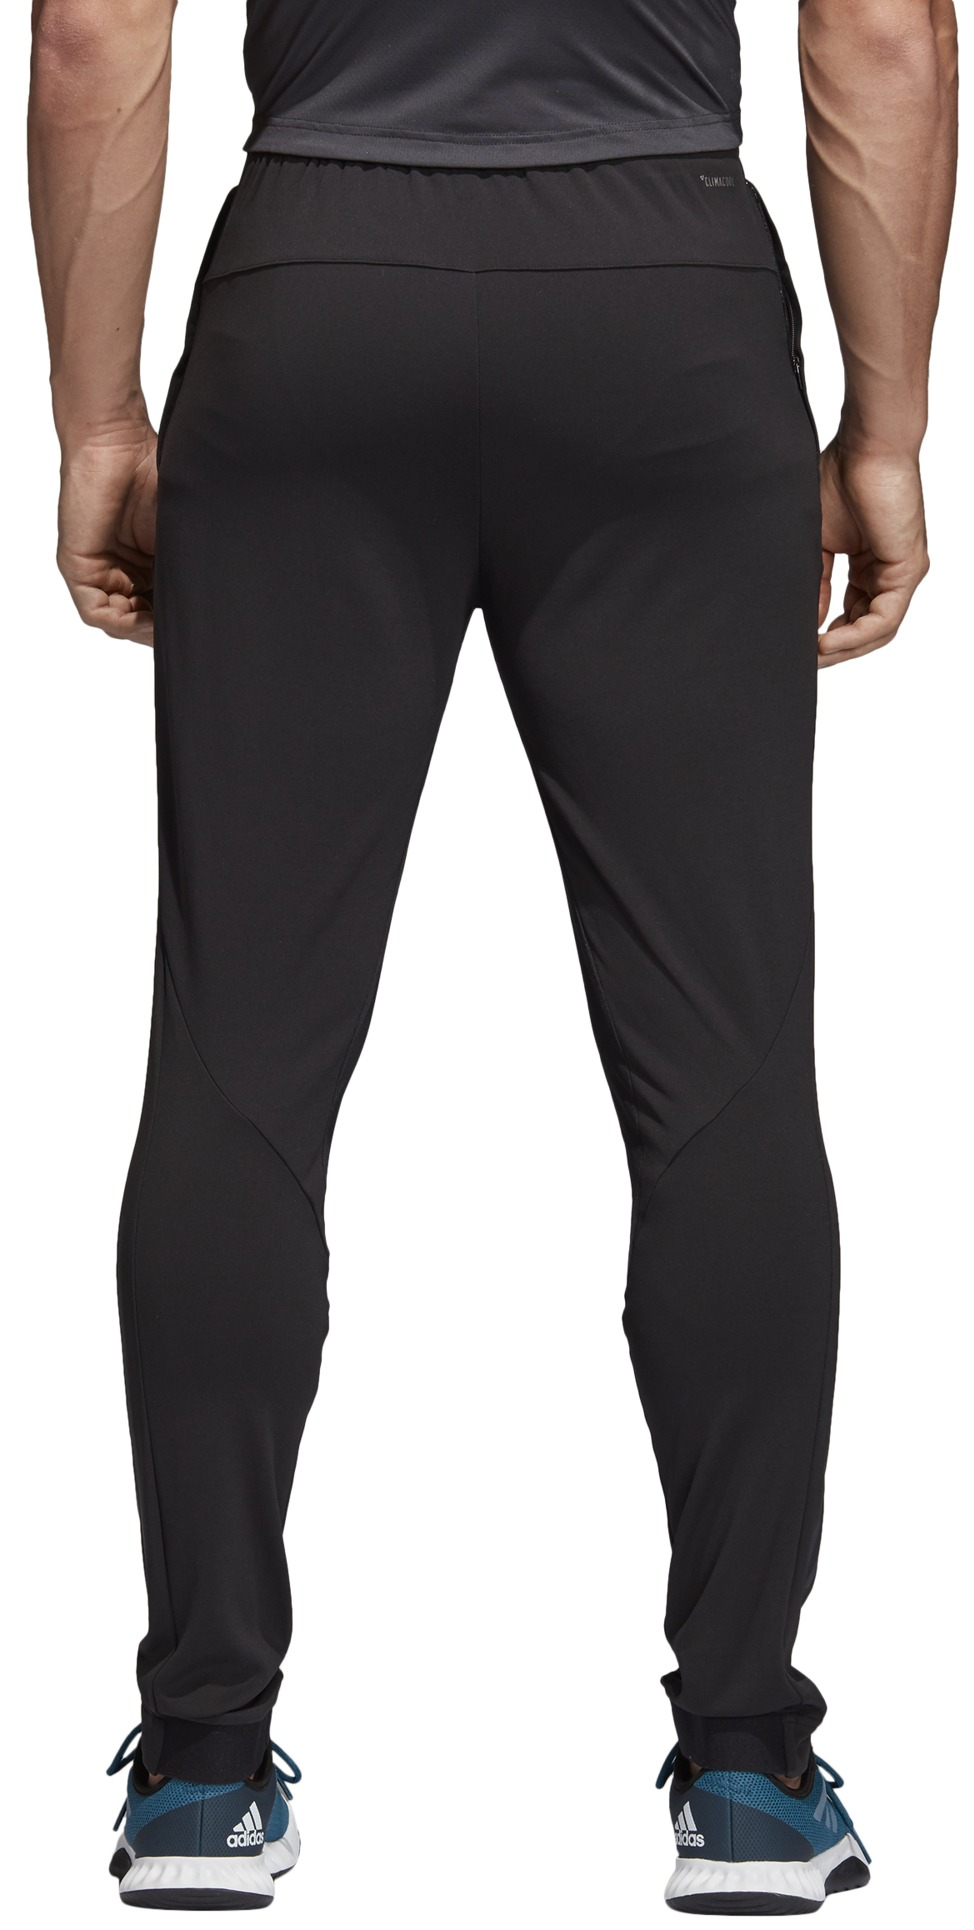 adidas WORKOUT PANT CLIMACOOL KNIT | sportisimo.pl